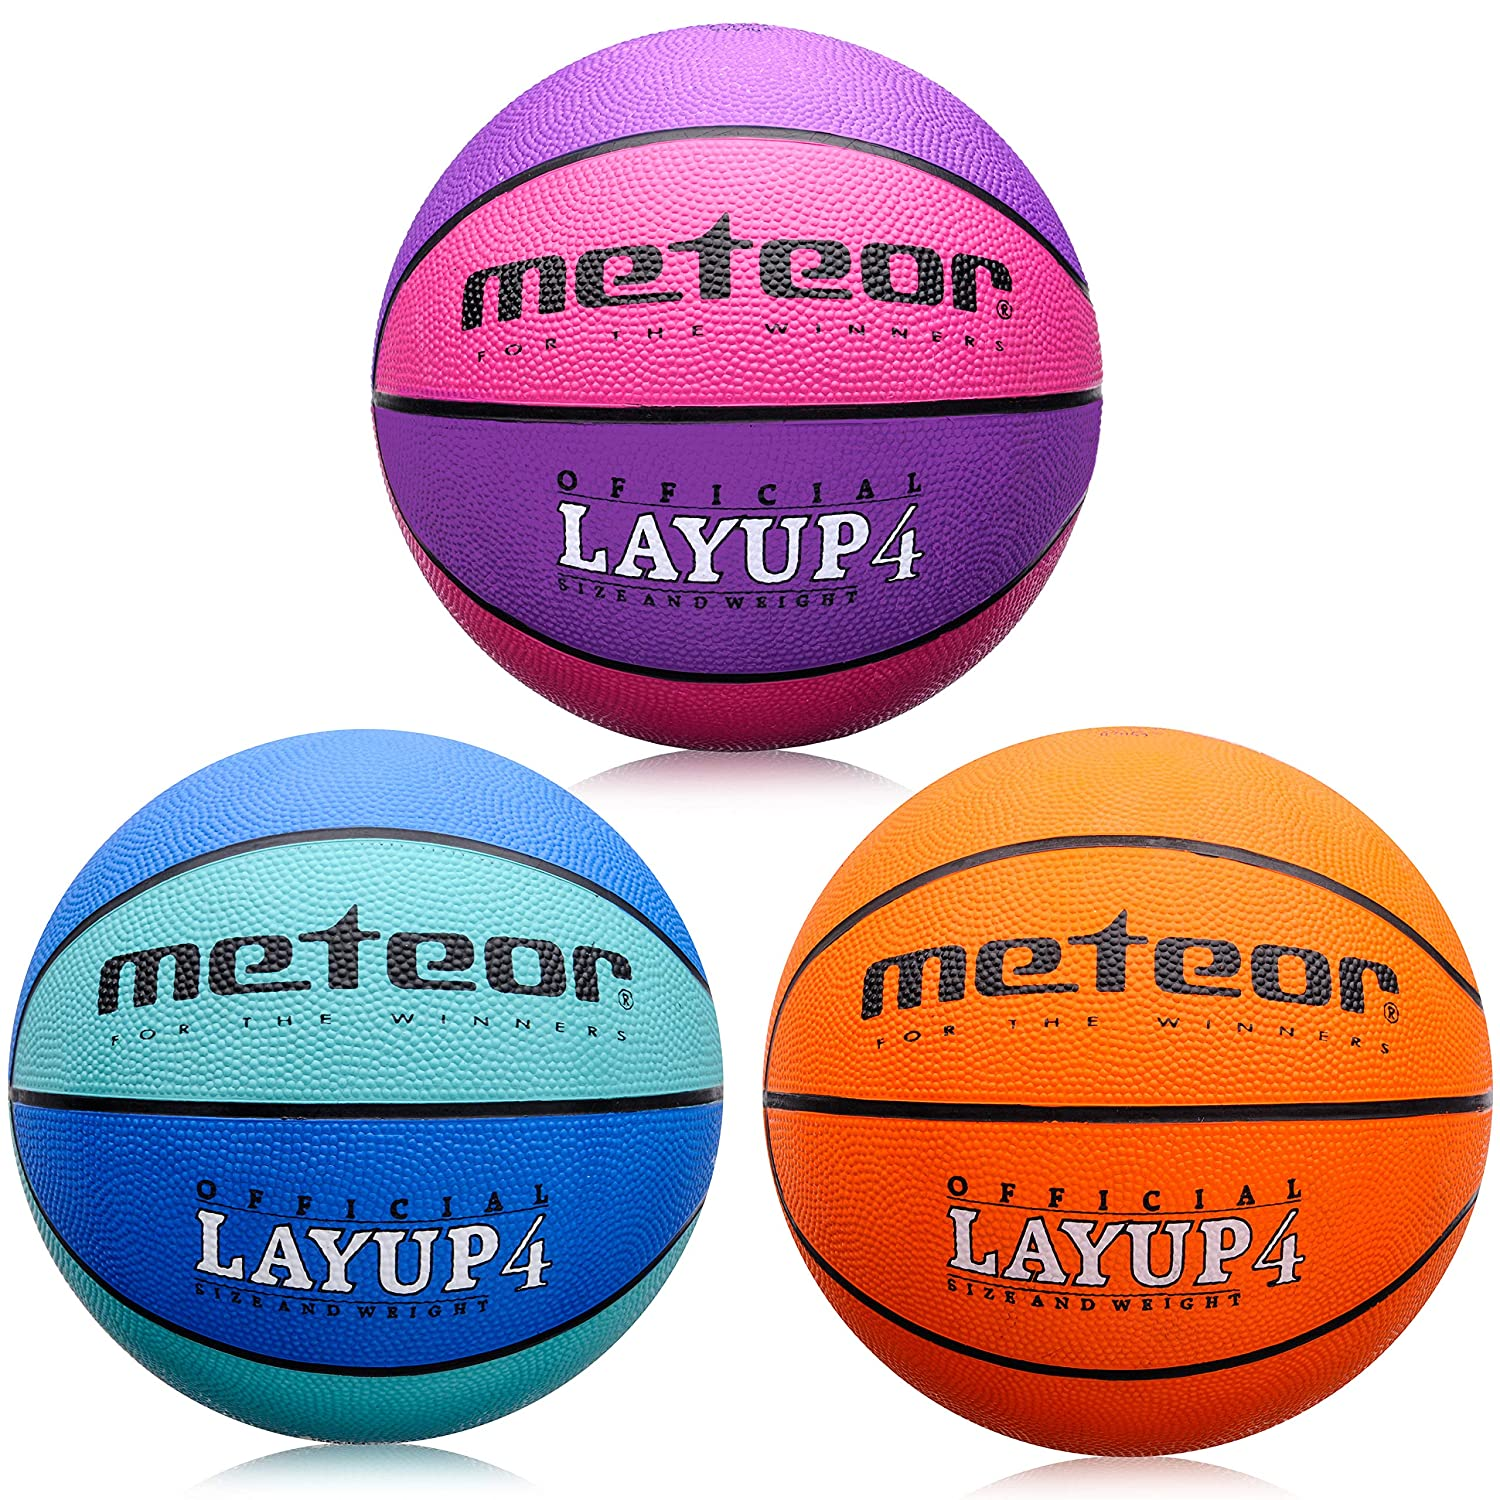 7fcbb0069ba Meteor® Layup  Children   Youth Basketball - Size 4 ideal for children - 5  to 10 Years Perfect for Training Soft Basketball Basketball With Non-Slip  ...